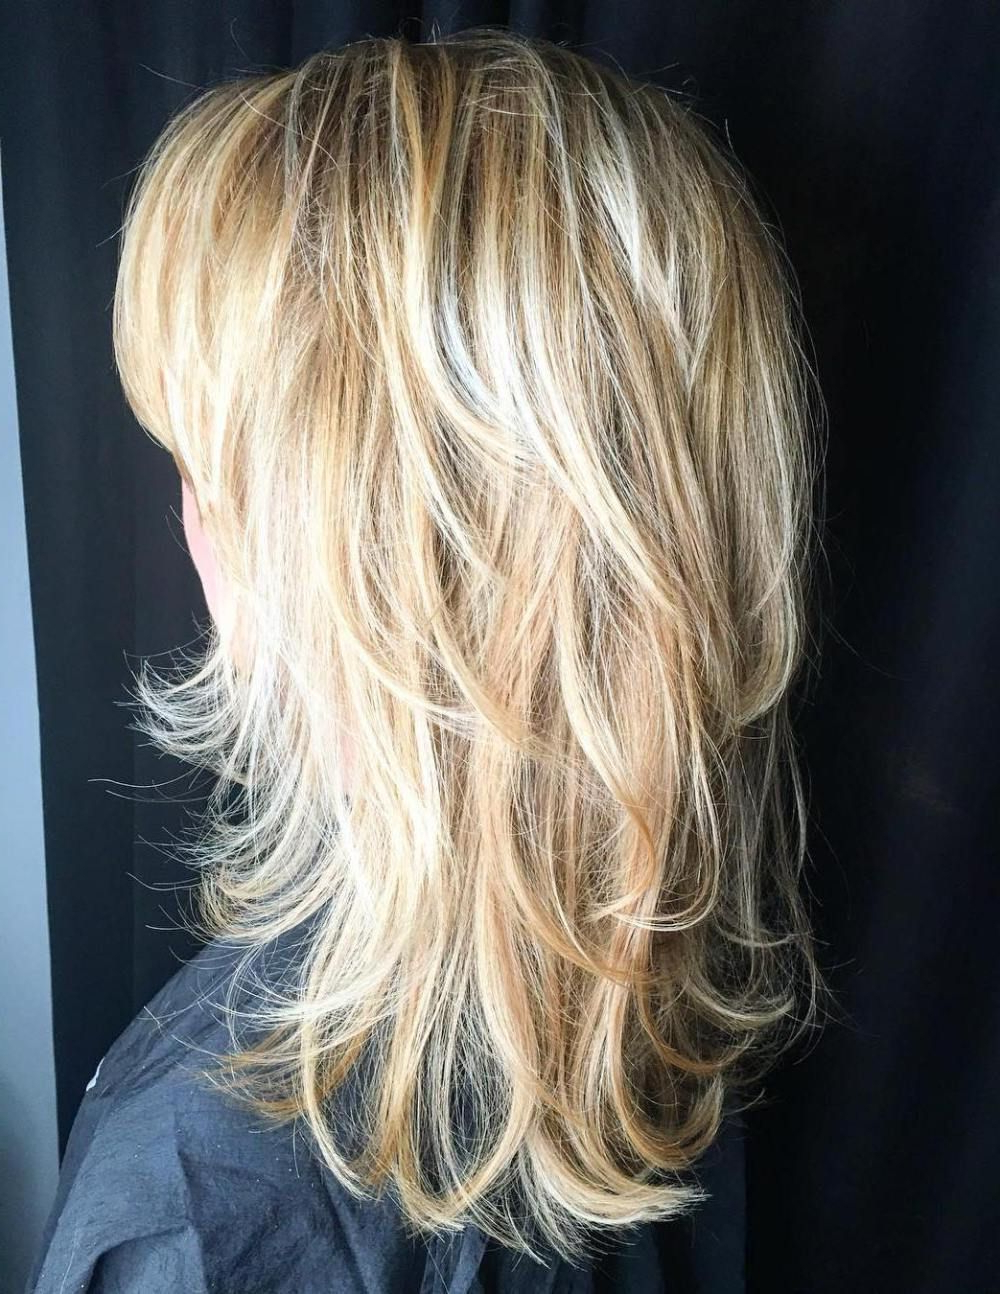 Well Known Blonde Shag Haircuts With Emphasized Layers Intended For 60 Lovely Long Shag Haircuts For Effortless Stylish Looks In (Gallery 7 of 20)